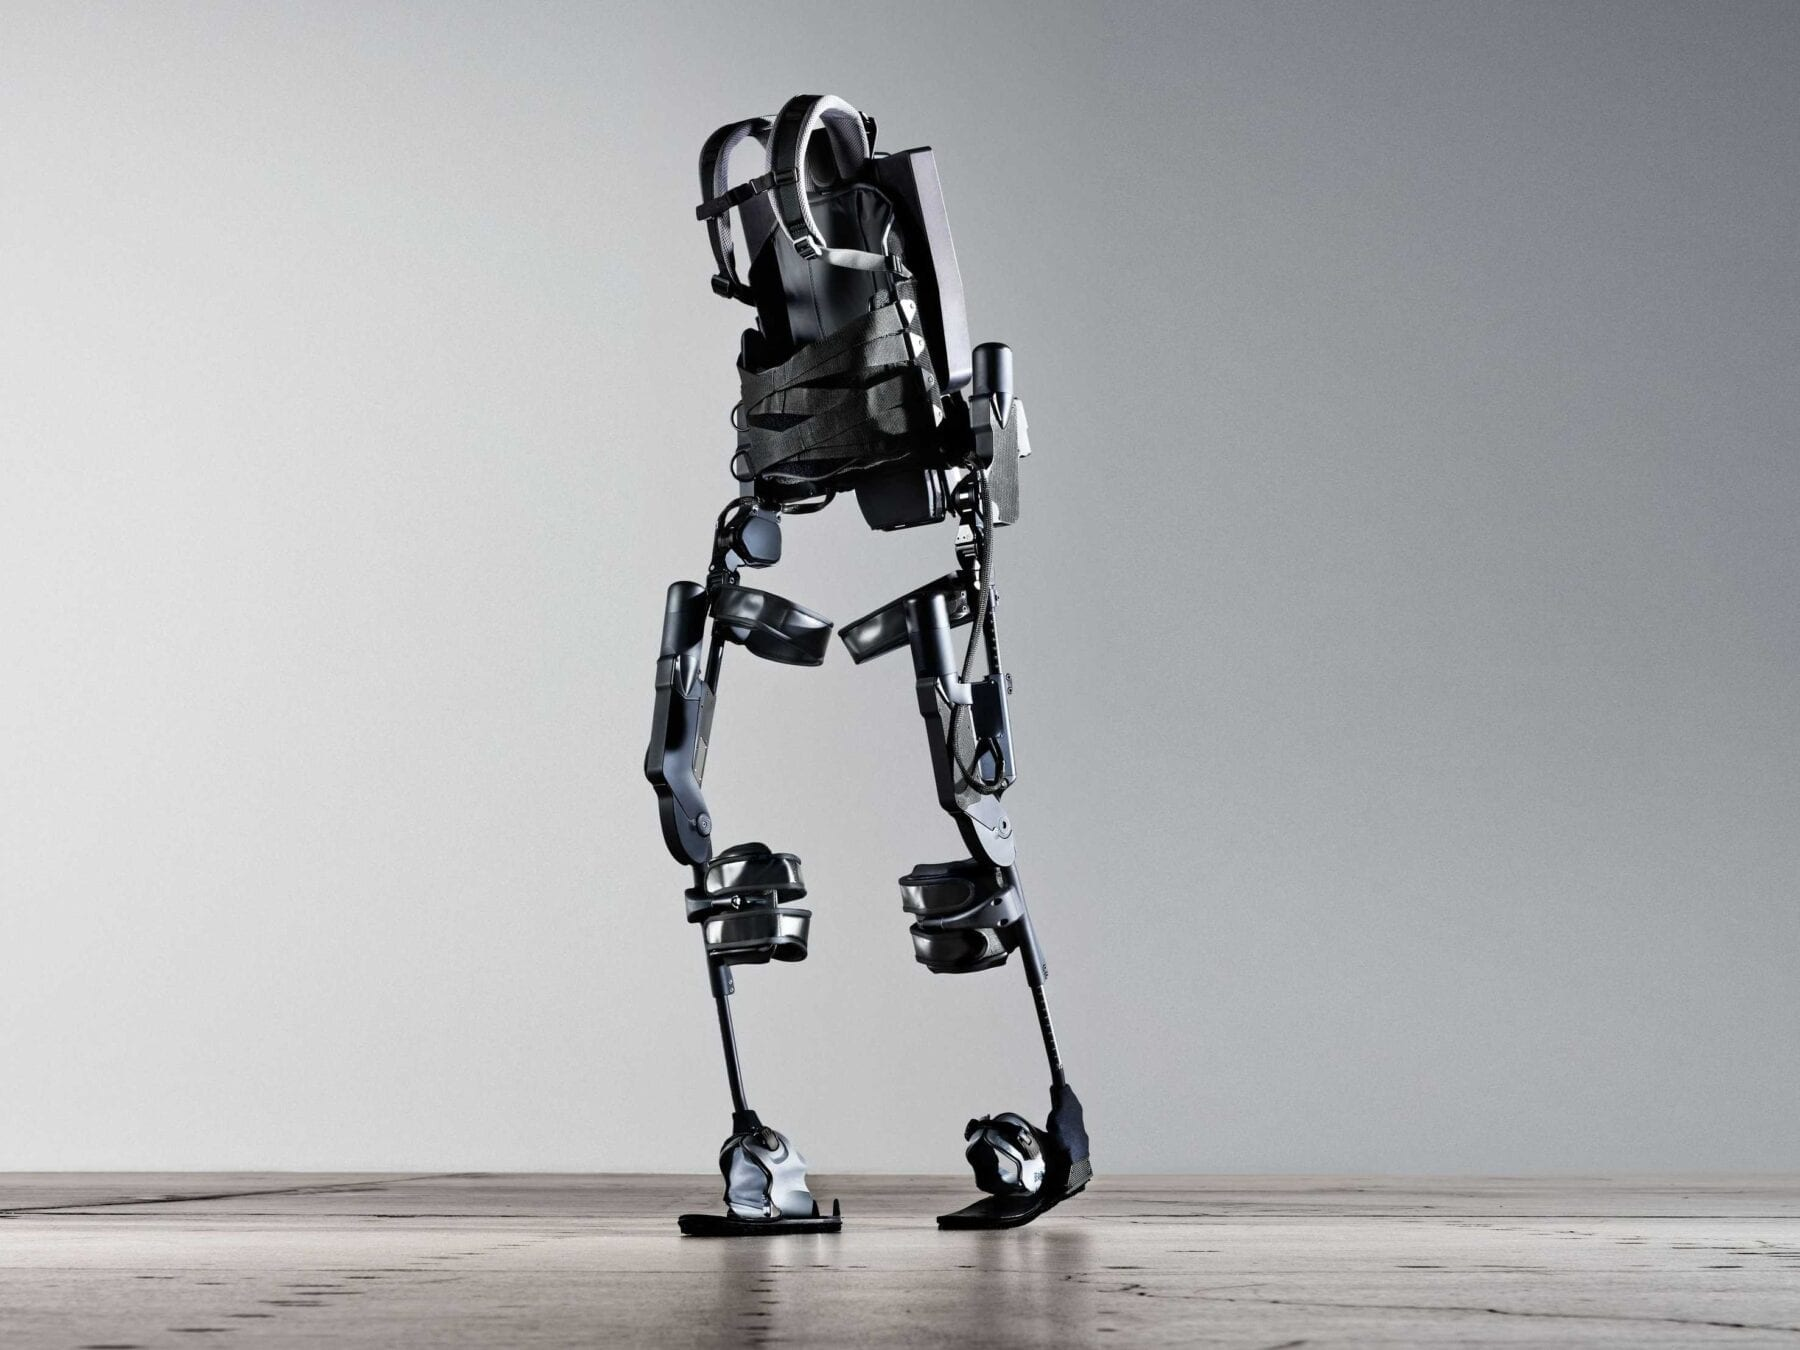 Human exoskeletons: Full metal jacket